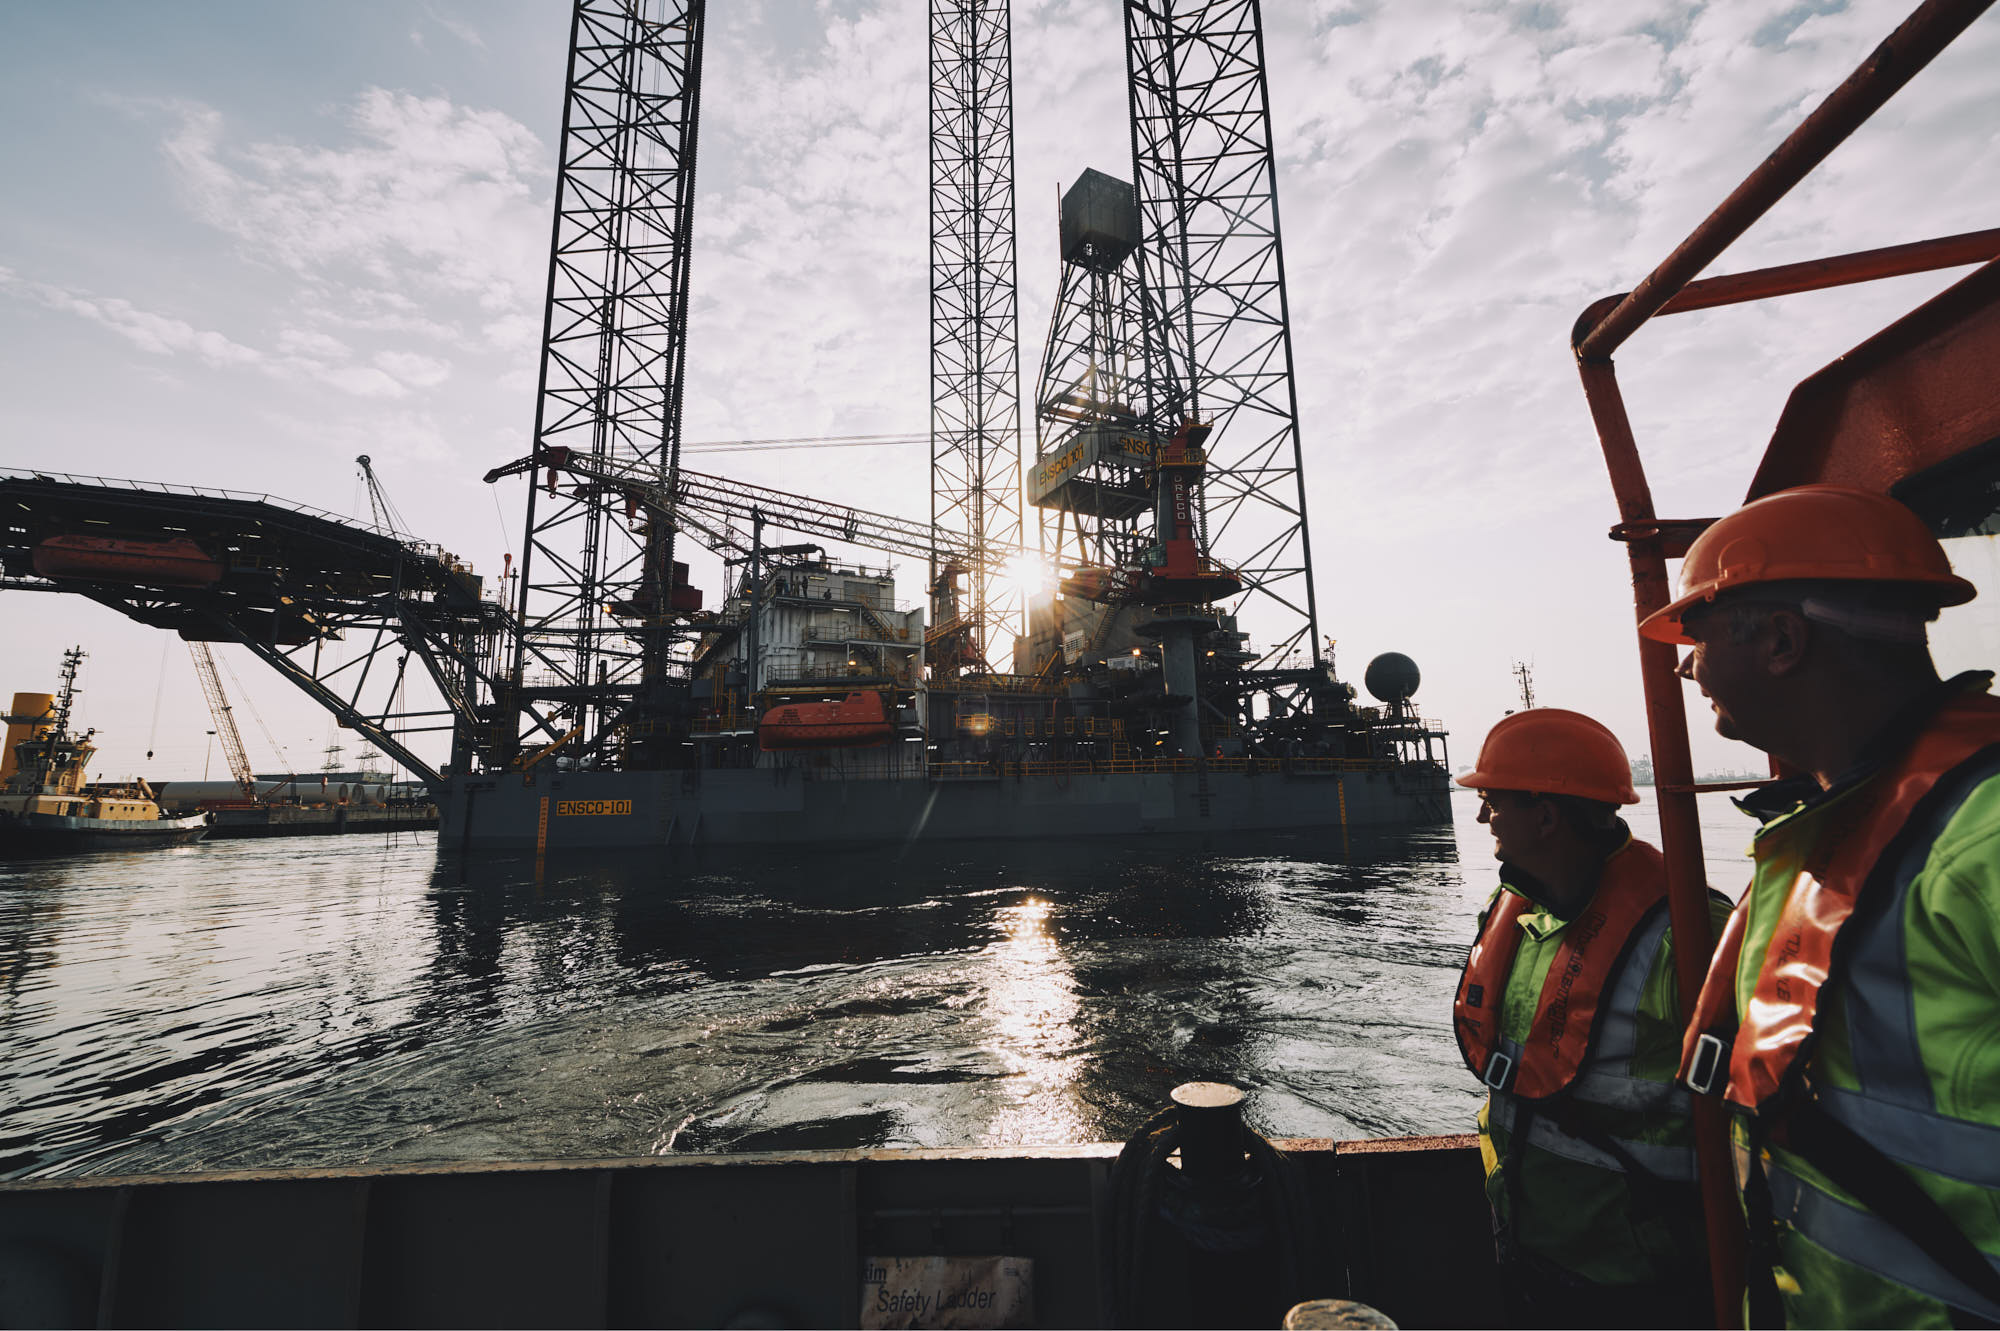 offshore oil and gas photography, teesside and abderdeen, global by matthew lloyd